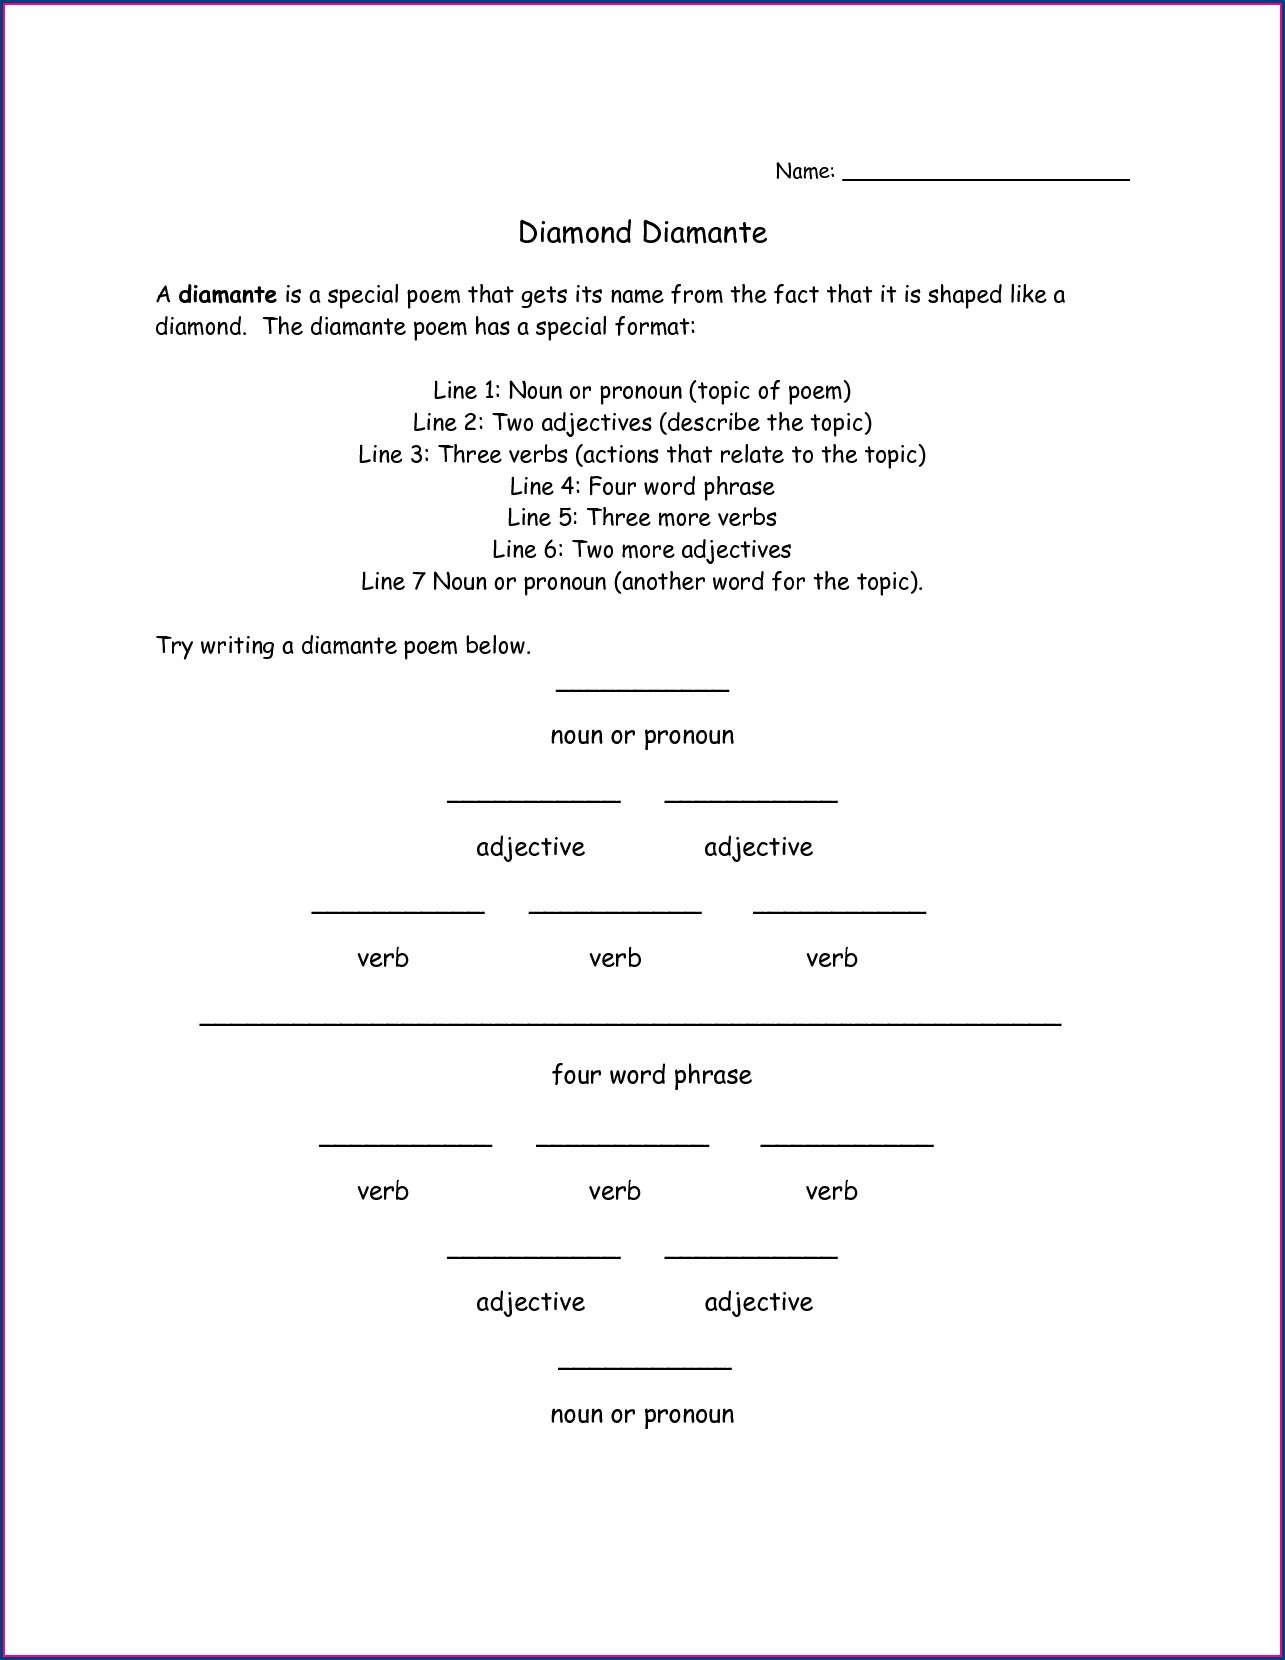 How To Write A Diamante Poem Worksheet